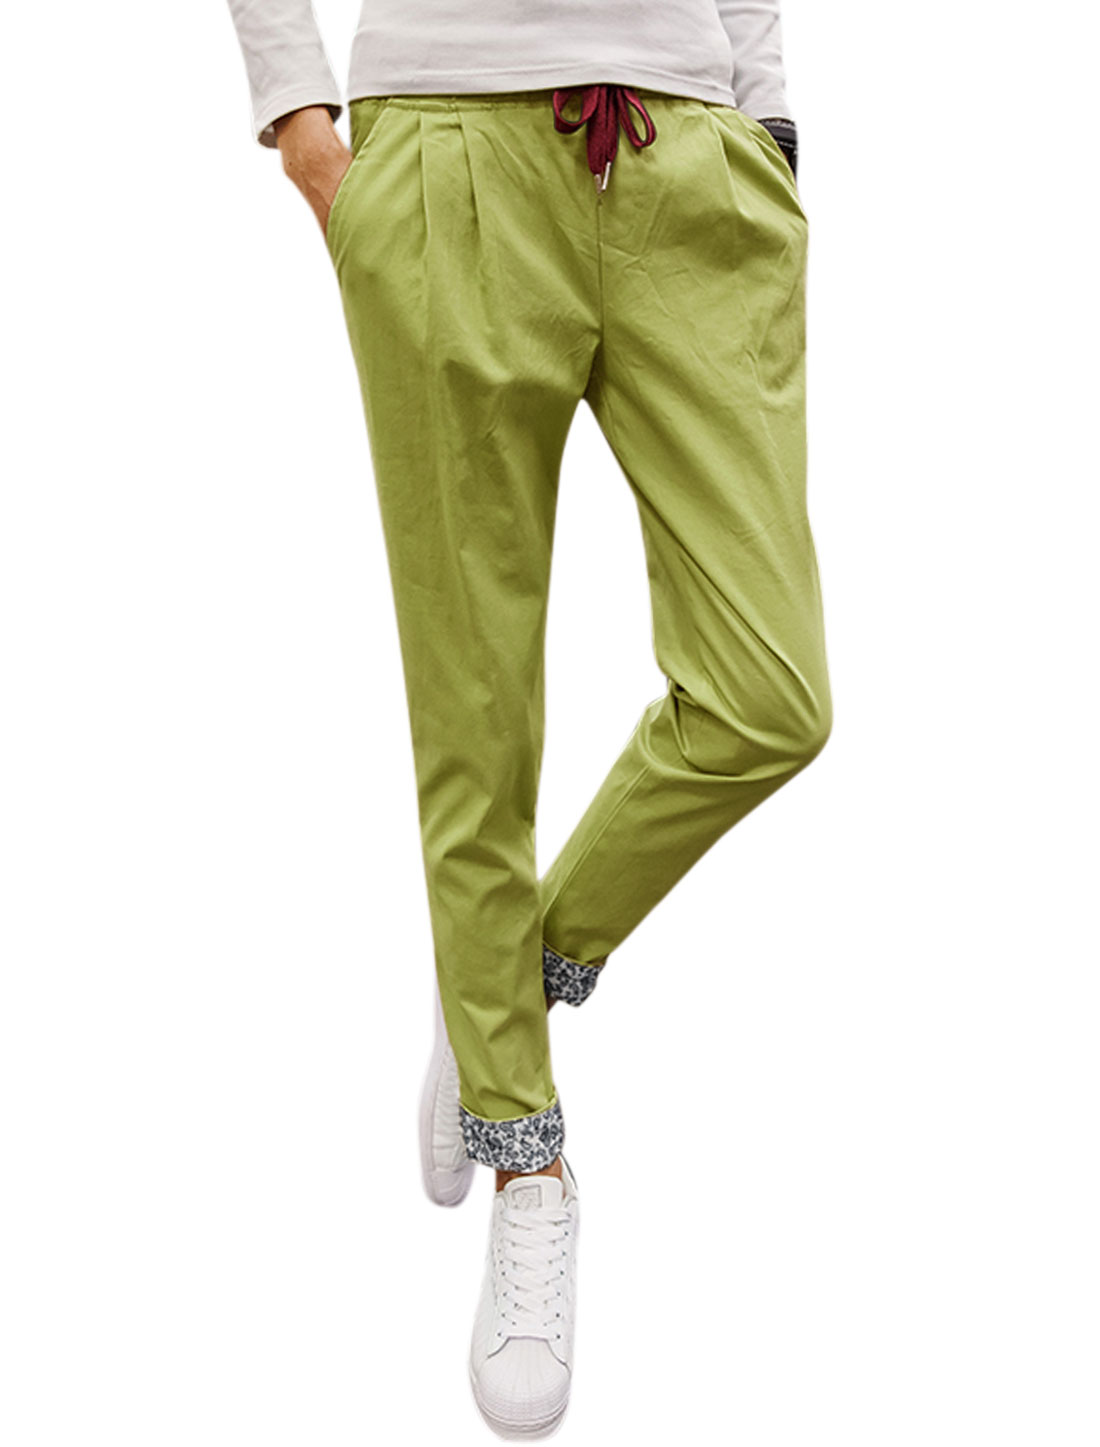 Men Side Pockets Tapered Slim Fit Elastic Drawstring Trousers Green W34